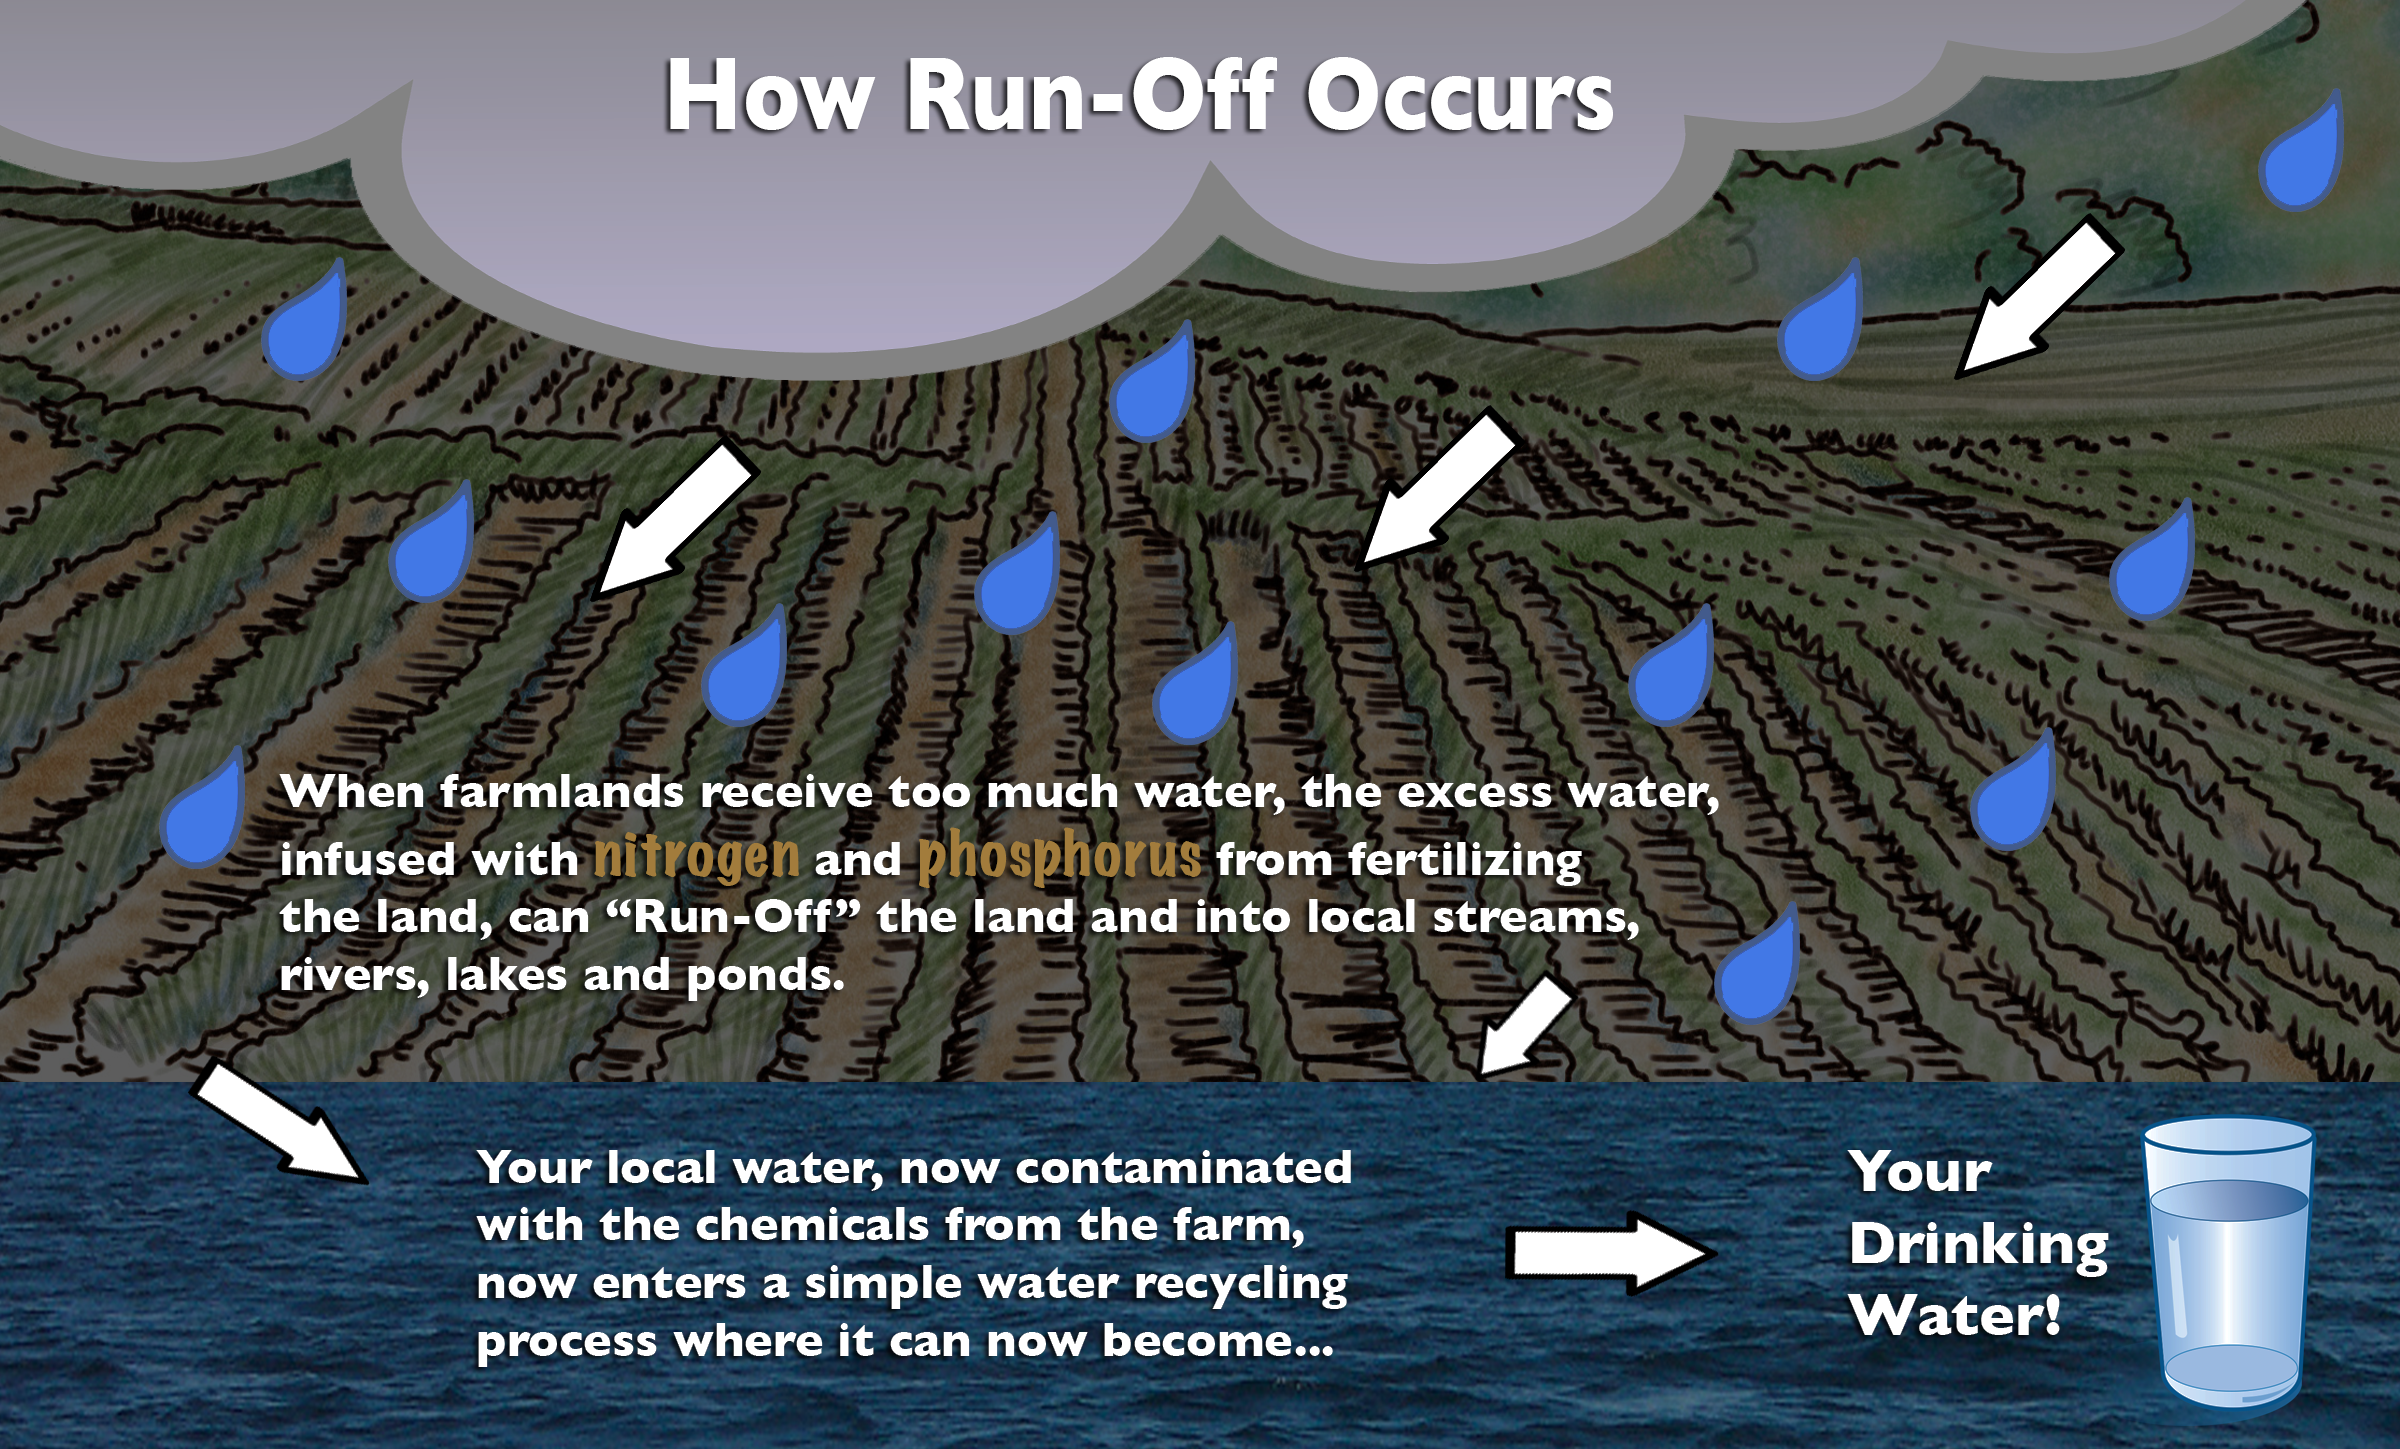 Runoff is water that runs off farmlands contaminating local waterways.